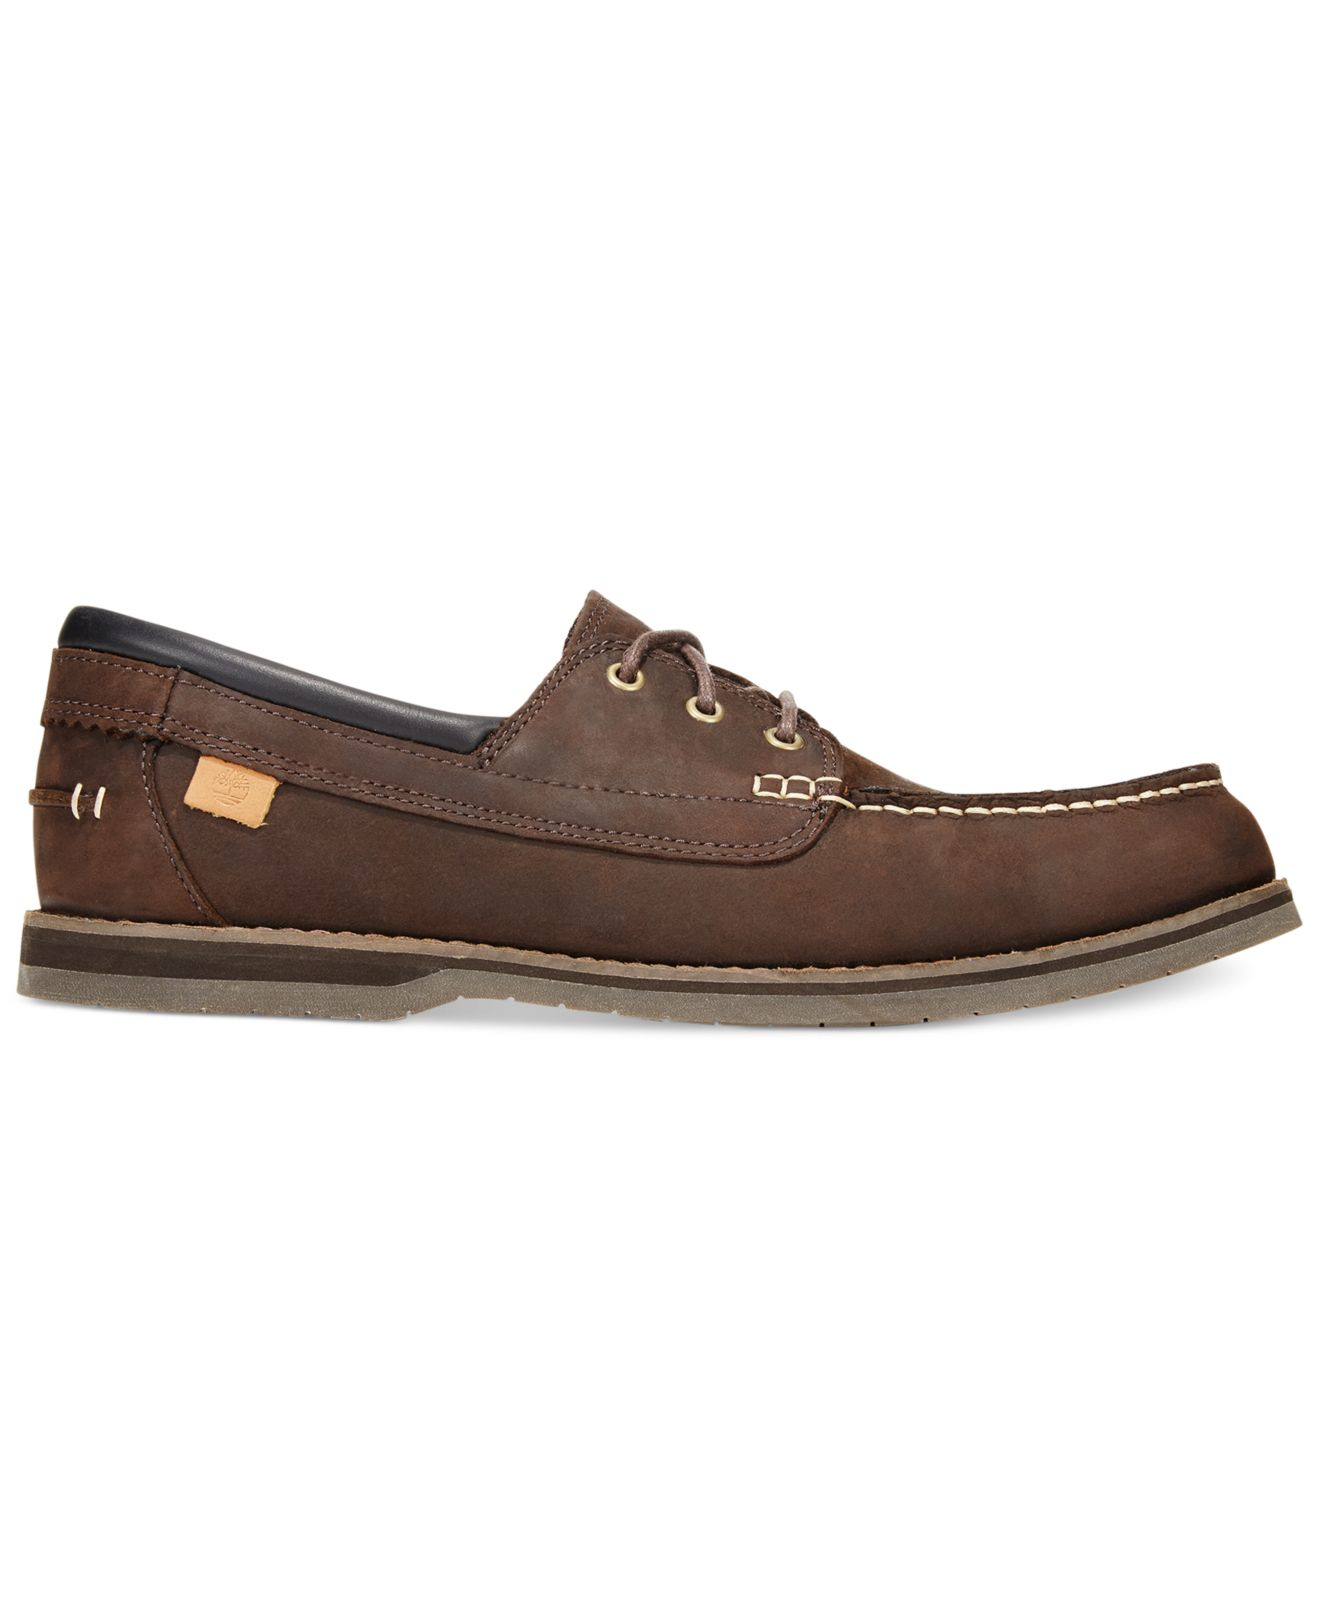 timberland s bluffton boat shoes in brown for lyst